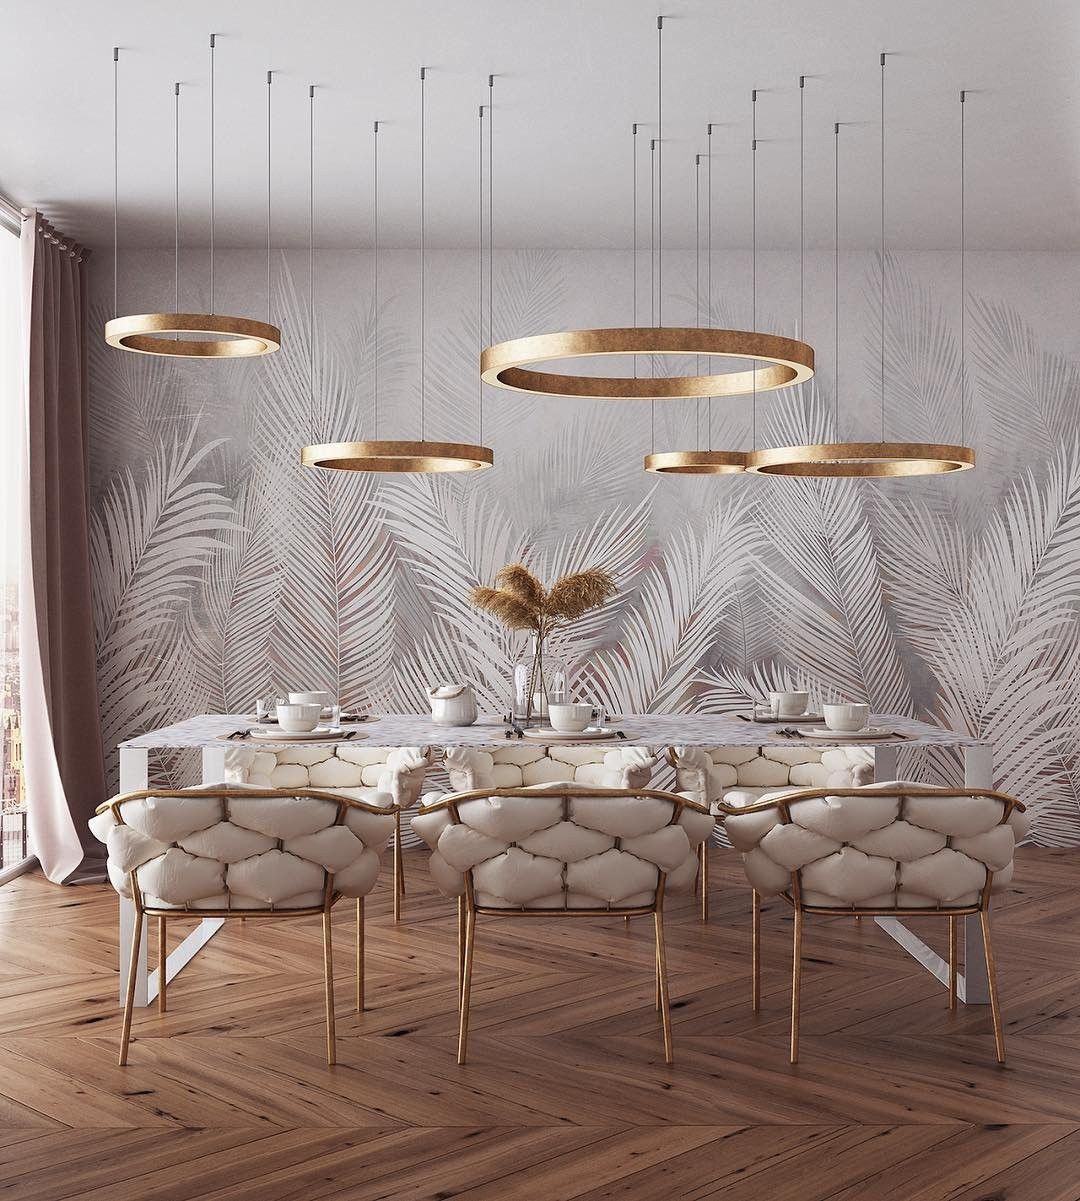 Something About The Idea Of Spray Painted Ferns Really Appeals To Me Gold Dining Room Luxury Dining Room Dining Room Contemporary